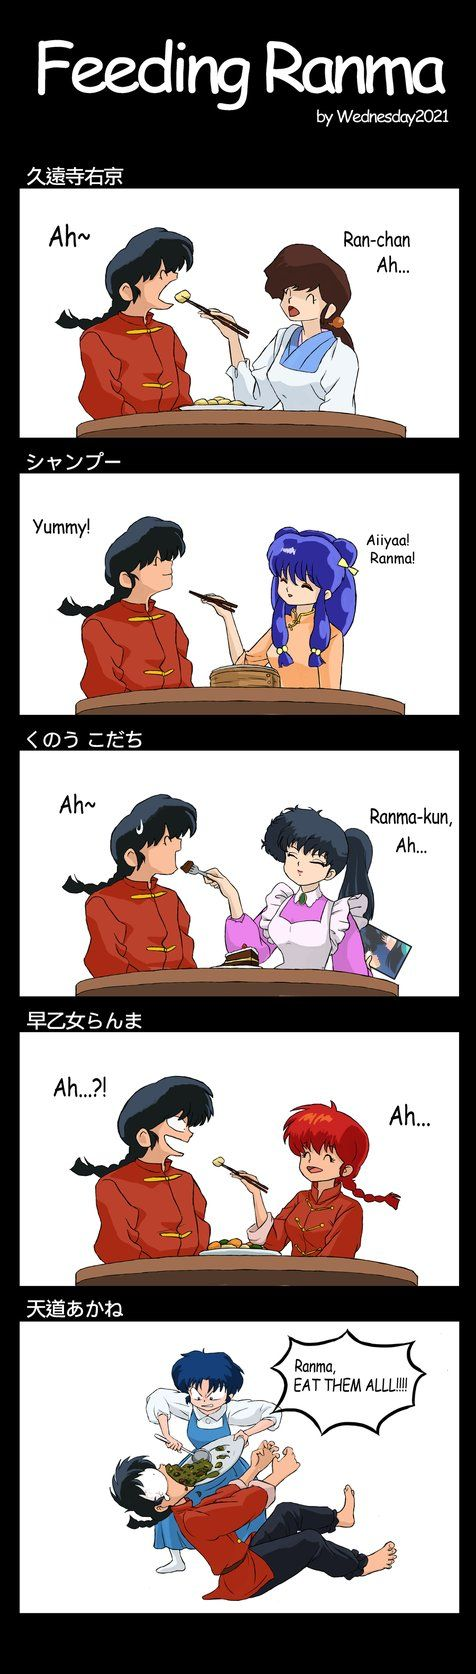 Ranma 1/2 I don't I know what'll kill him, her food or the fact that she is shoving it down his throat